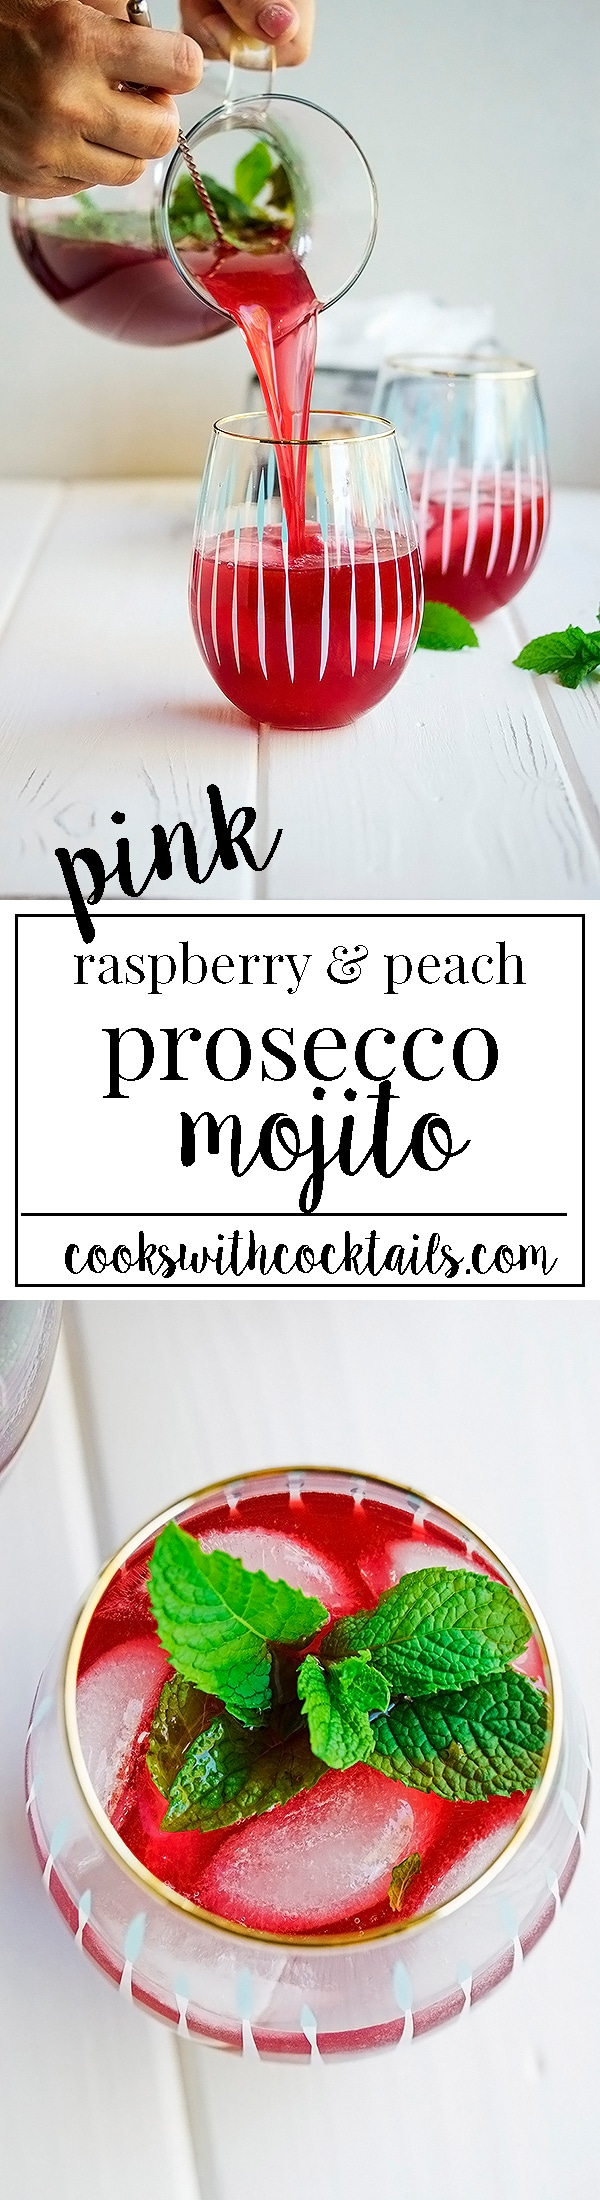 Pink Prosecco Mojito made with Raspberry and Peach Juice!